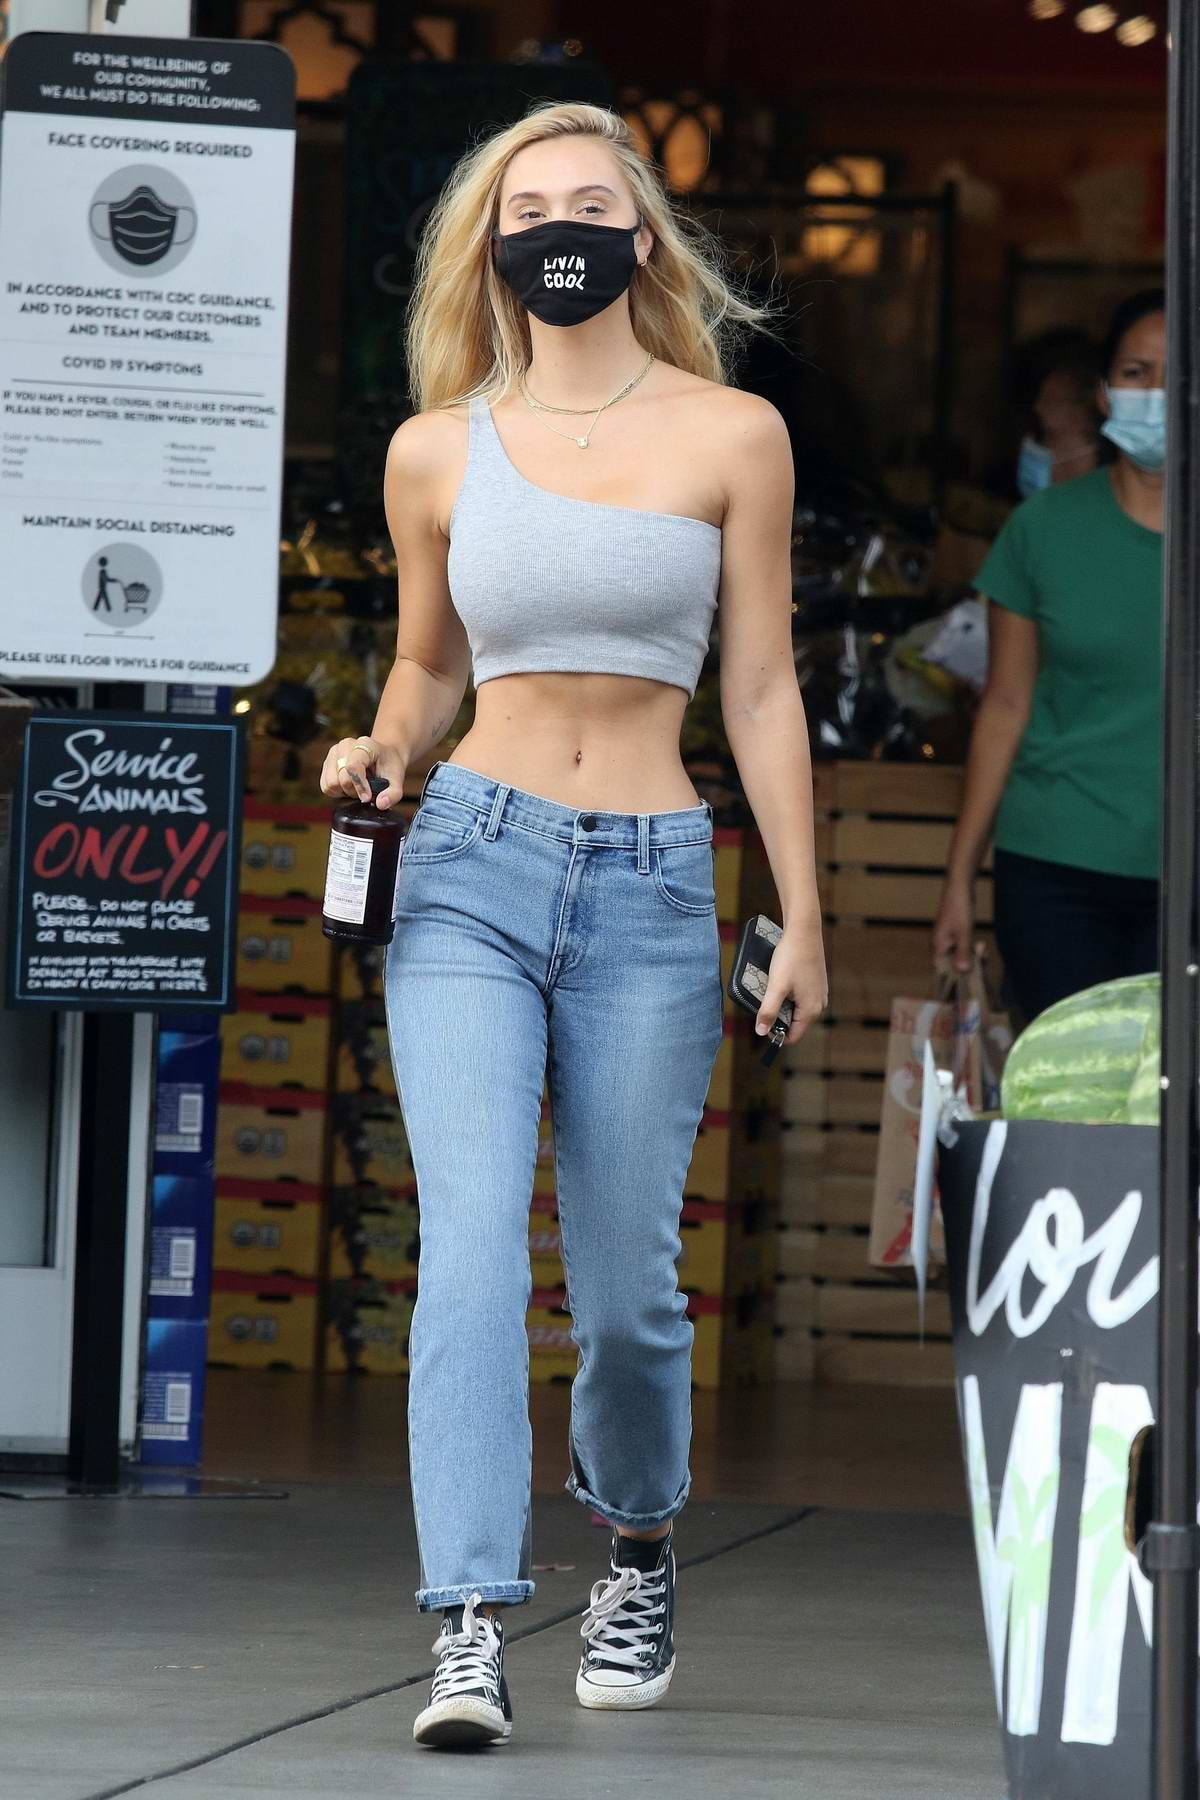 Alexis Ren flaunts her toned midriff while making a stop for a Kombucha at Bristol Farms in Beverly Hills, California